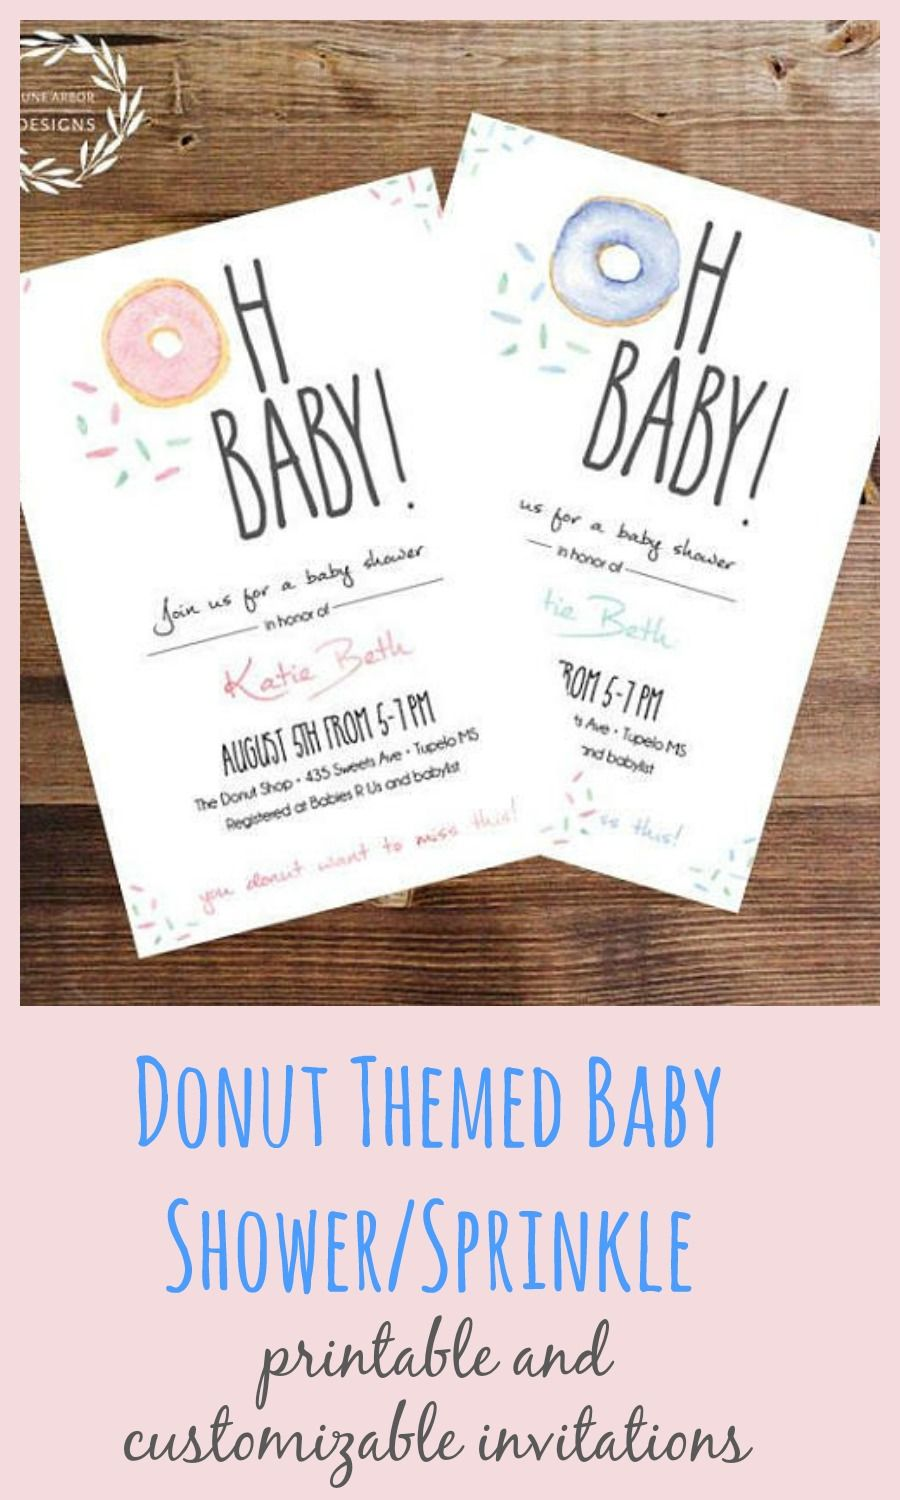 Donut Themed Baby Shower Invitations That Can Be Printed At